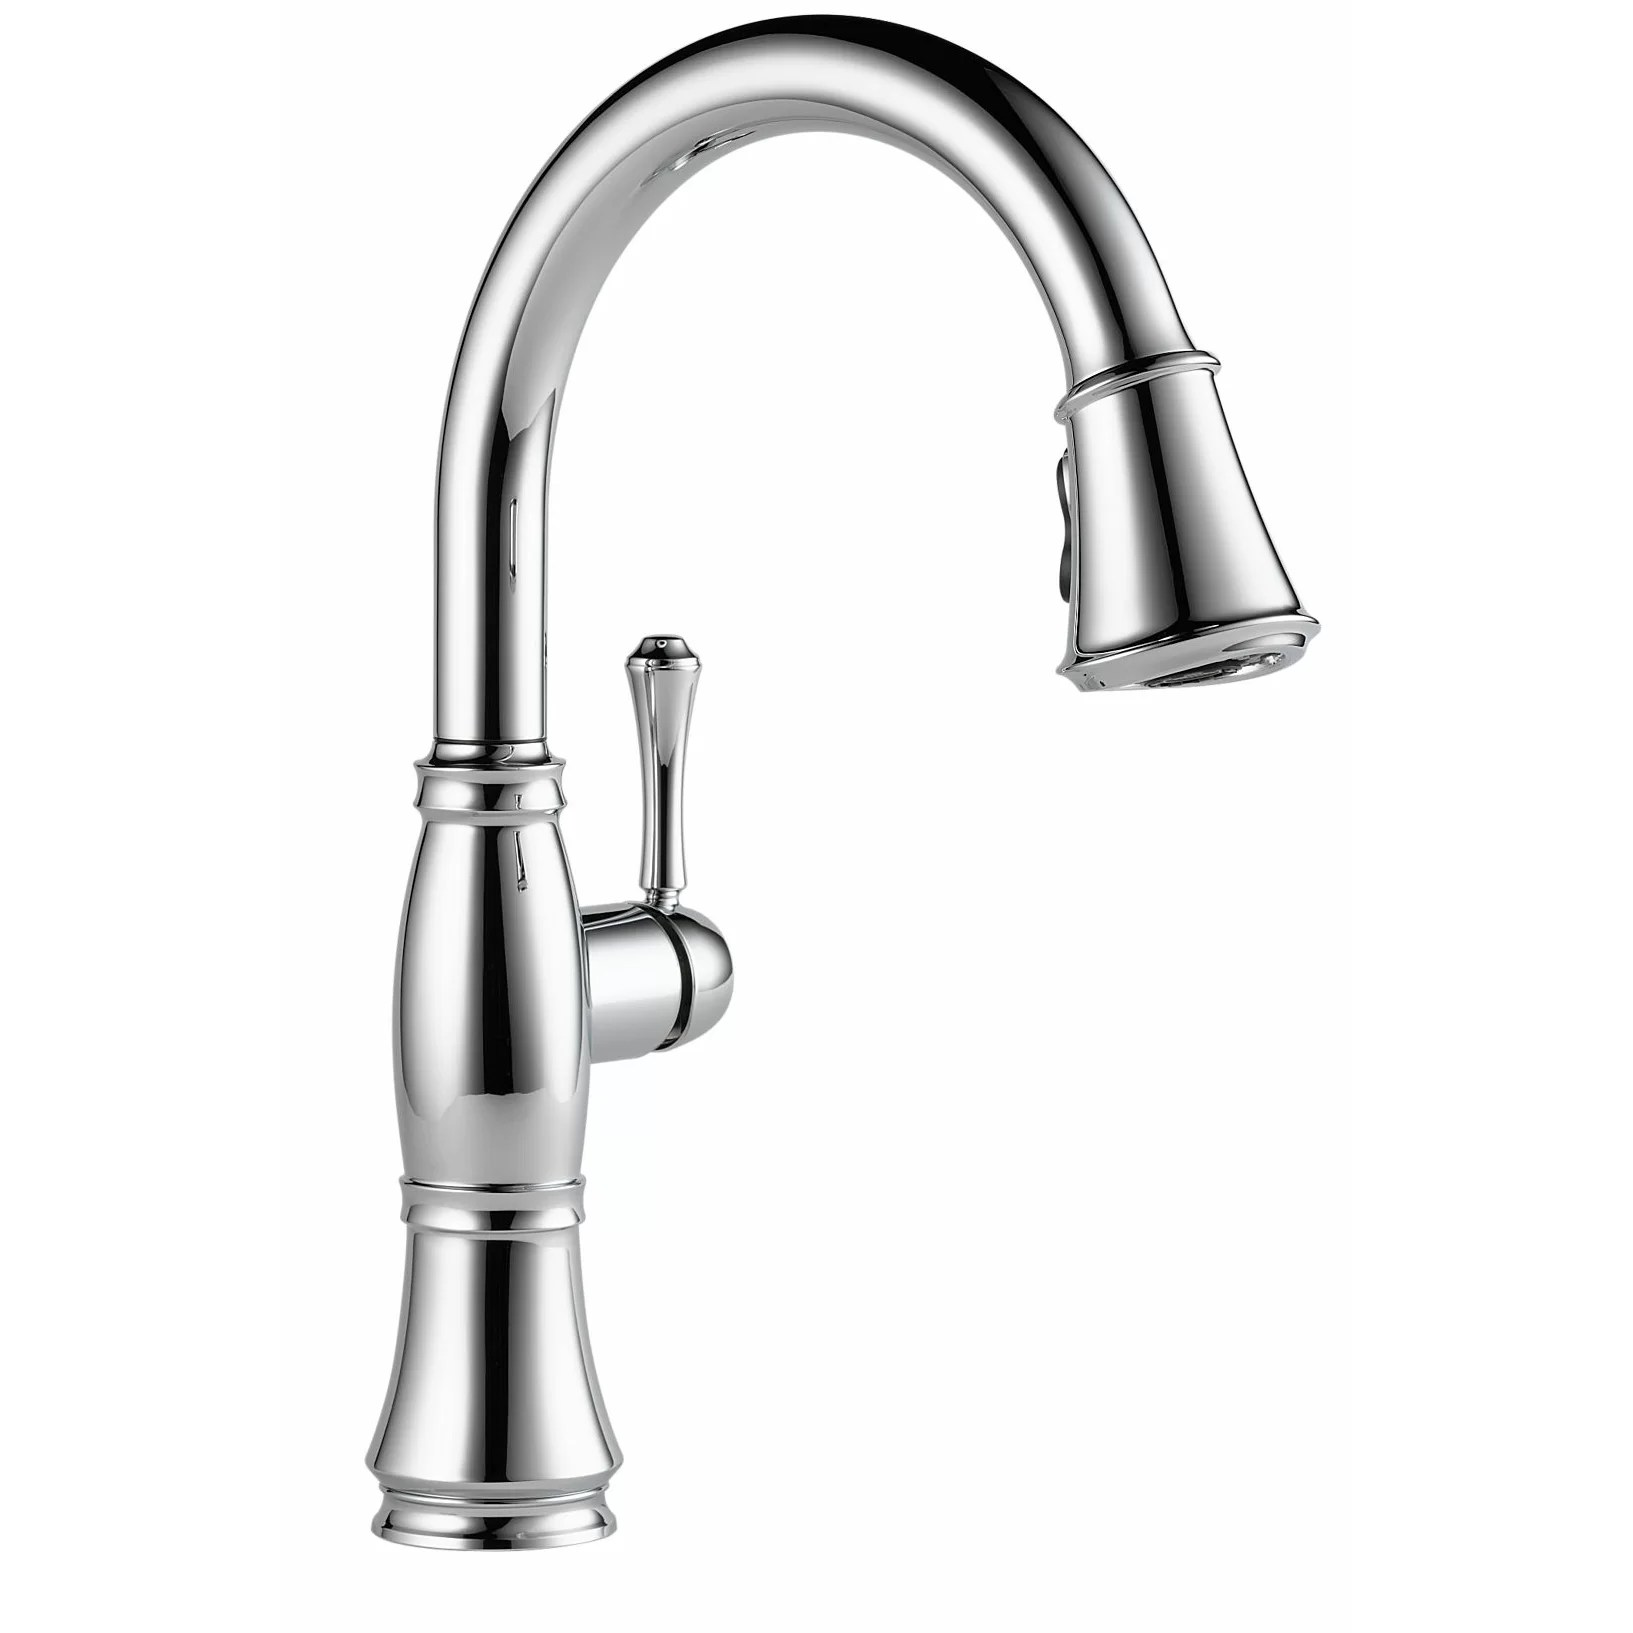 three hole kitchen faucet bar sink faucet single hole black 3 hole kitchen faucets c a white kitchen faucet cassidy single handle standard kitchen faucet with